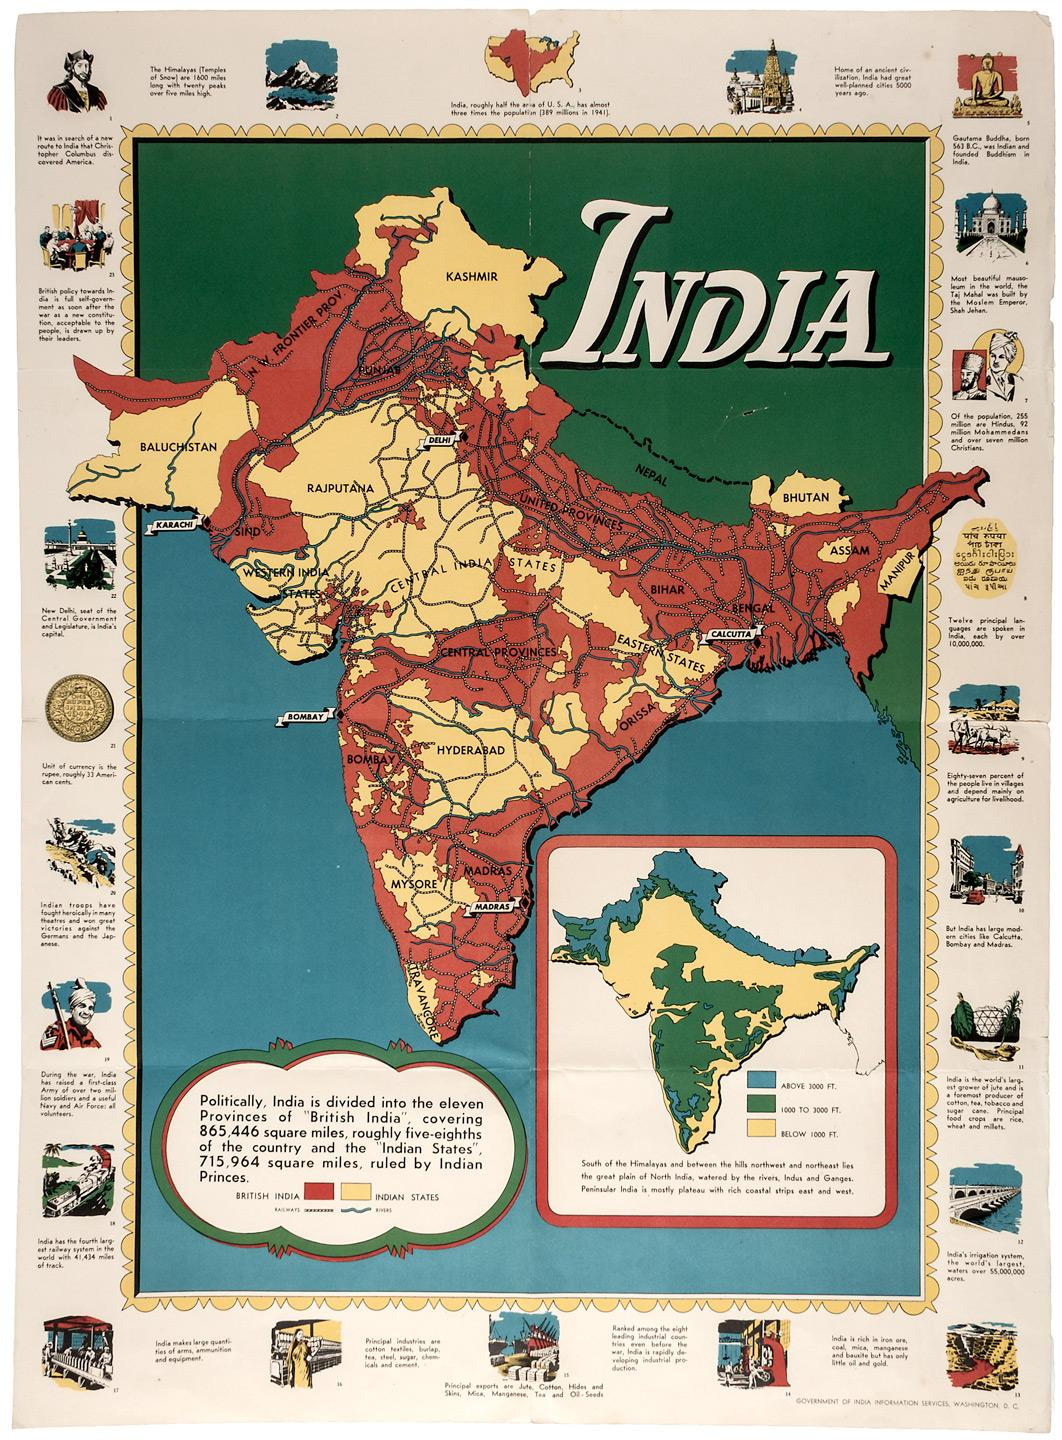 Map of british india world war ii poster 1944 price estimate 100 sale 510 rare americana travel exploration asian american history maps views 510 07112013 1100 am pdt closed gumiabroncs Images